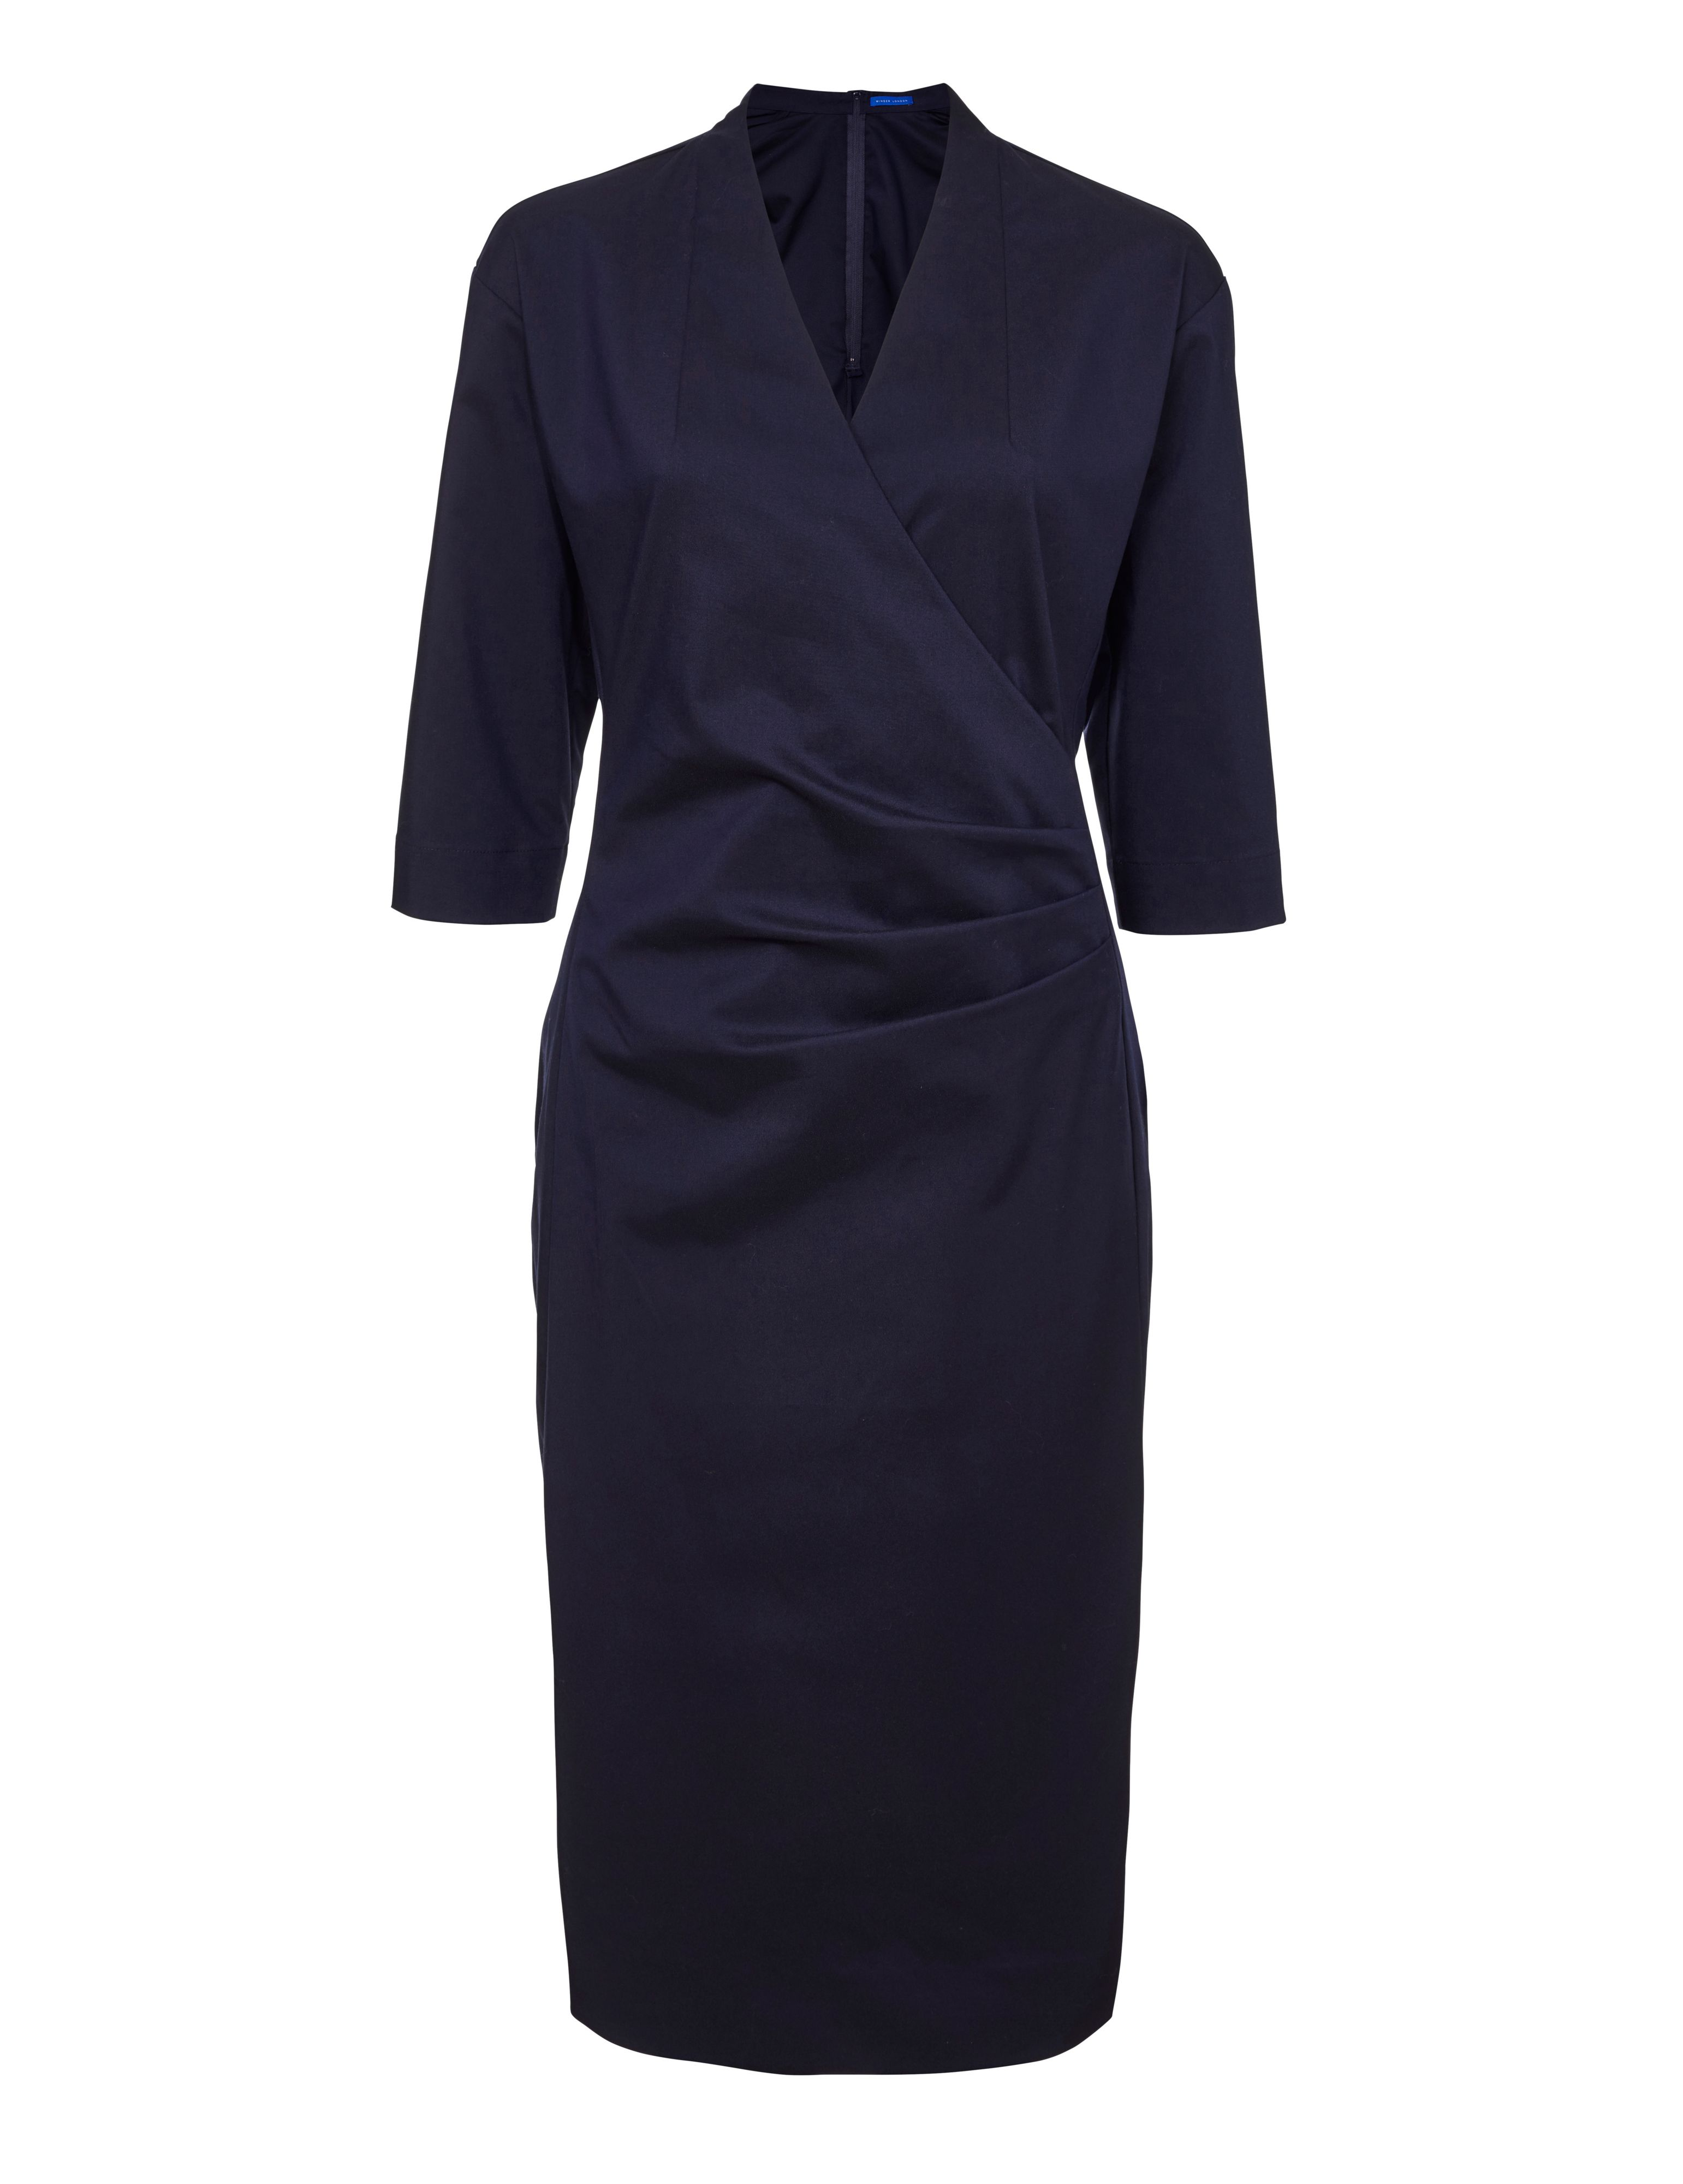 Winser London Cotton Twill Miracle Dress, Blue